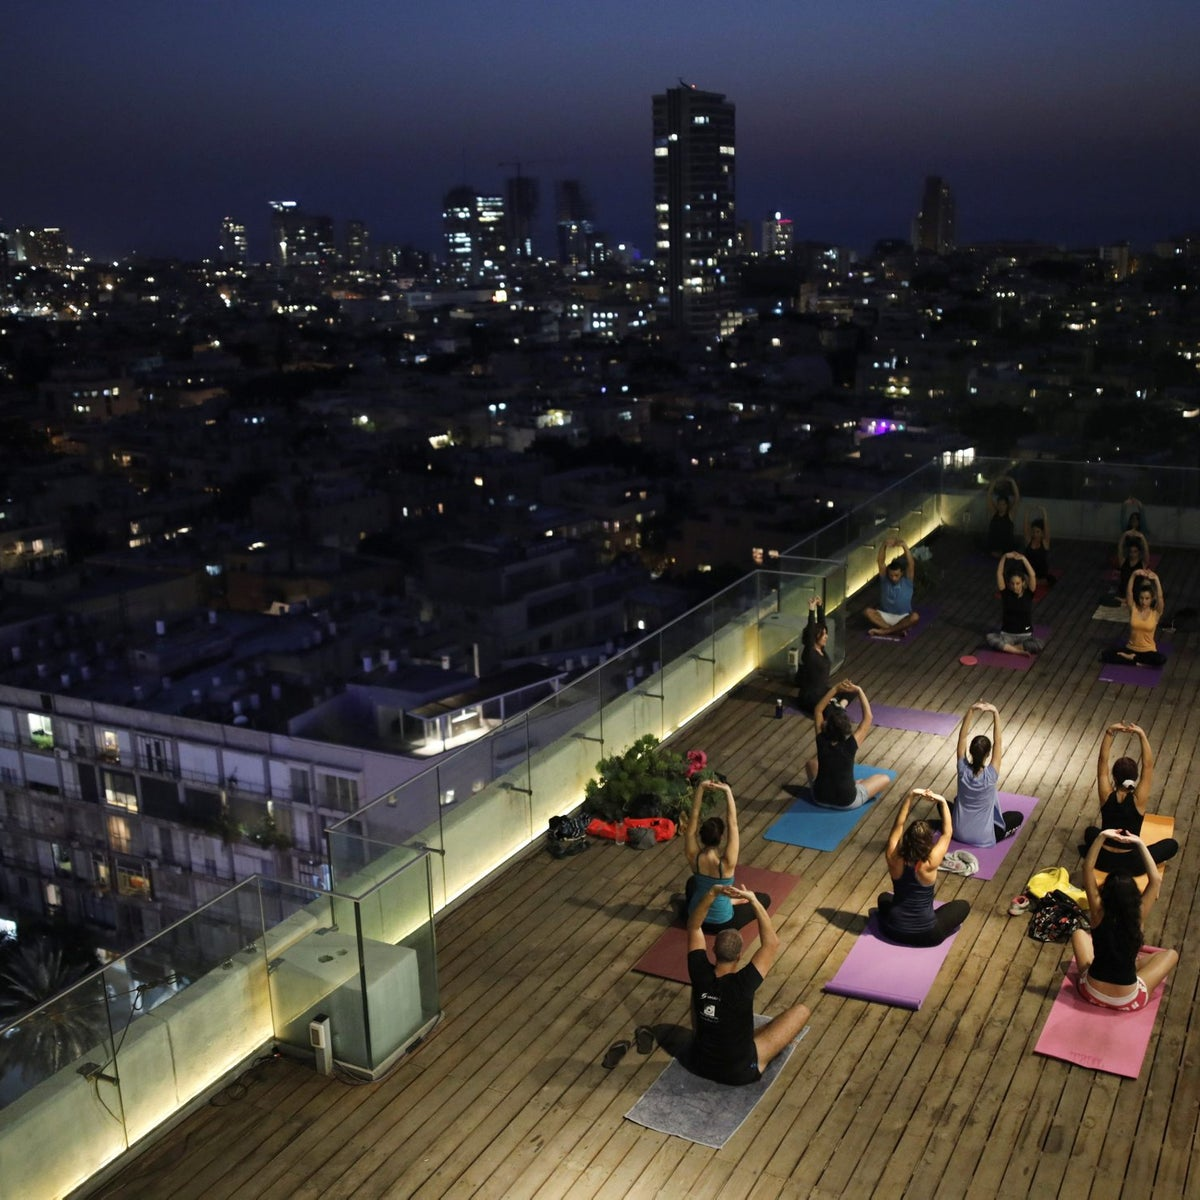 People participate in a yoga class on the rooftop of Tel Aviv municipality building, Tel Aviv, Israel, October 19, 2017.